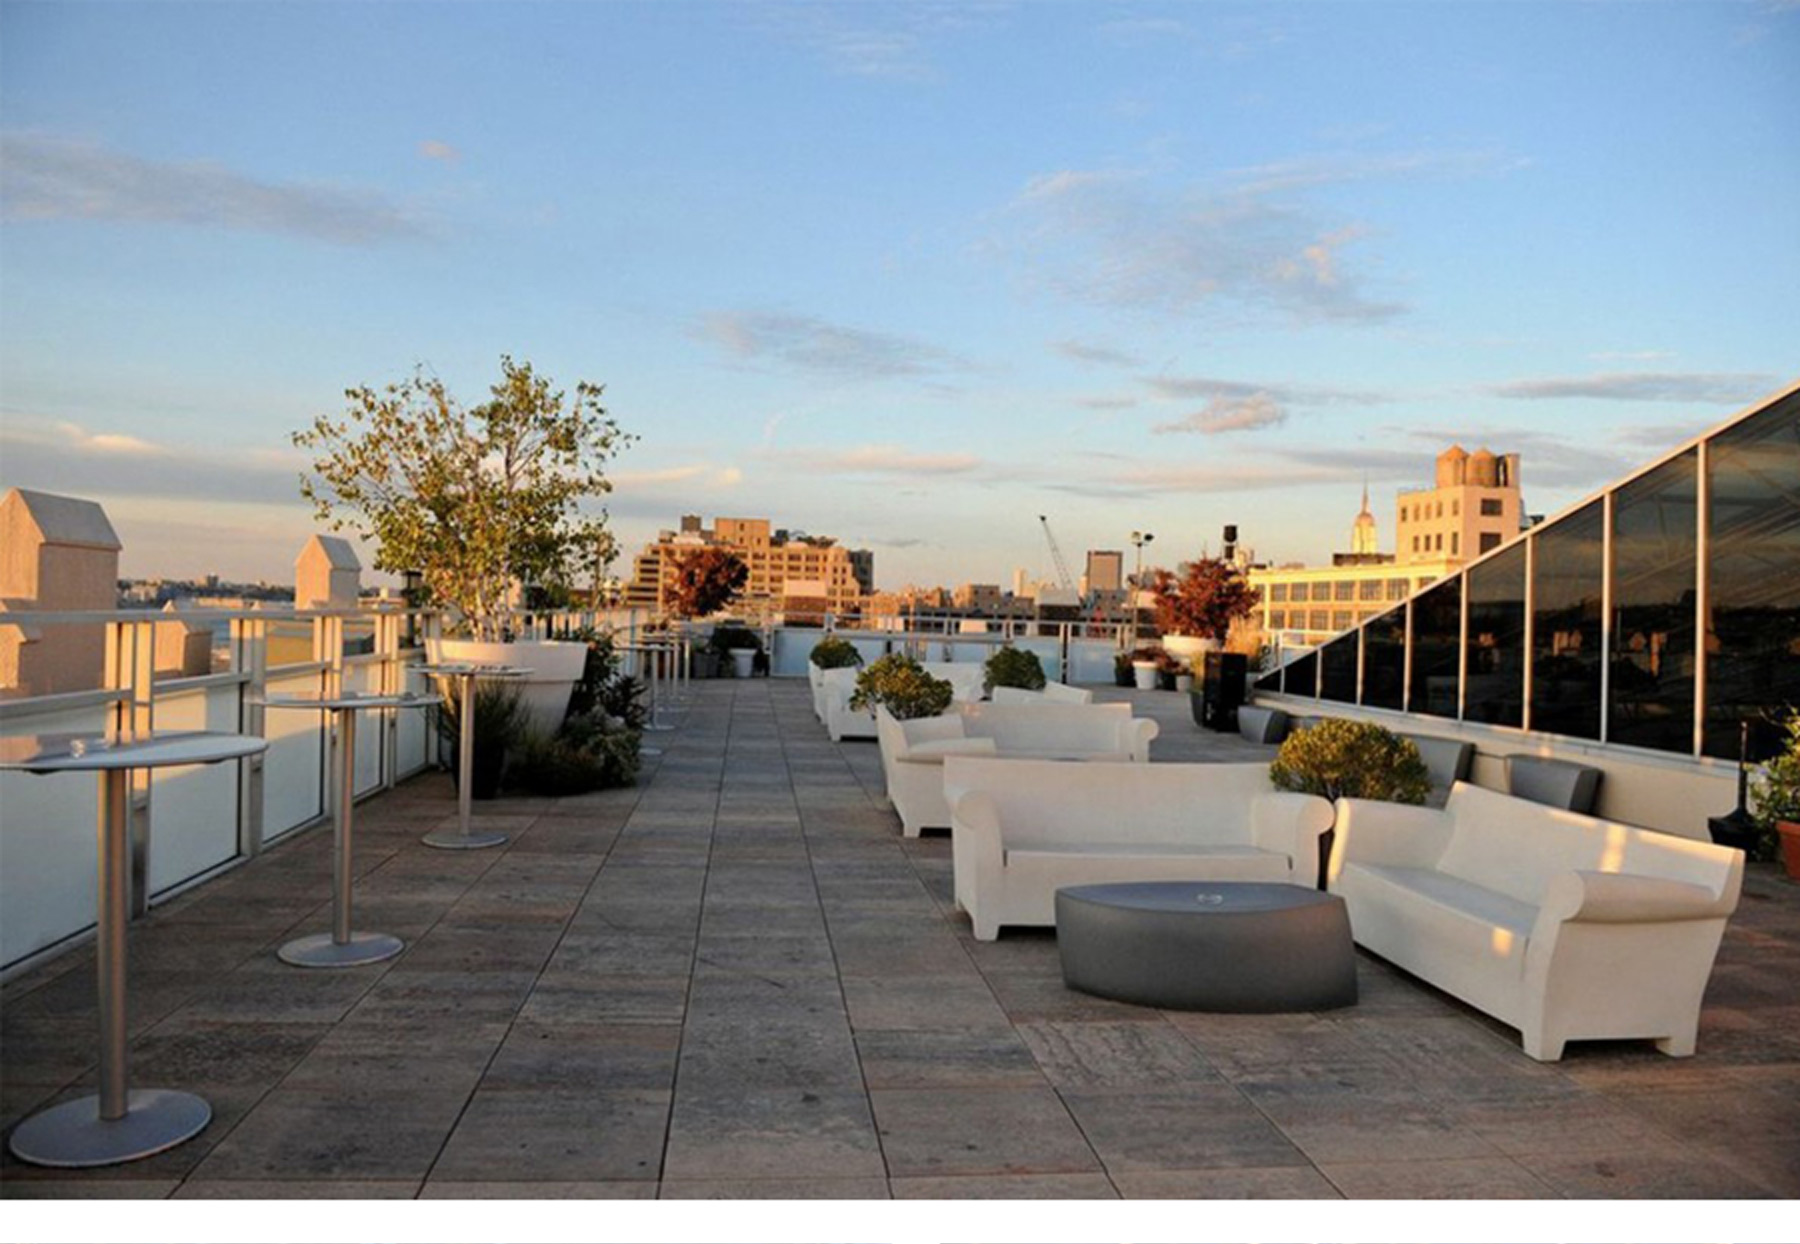 Tribeca Rooftop New York City CeciStyle Ceci New York